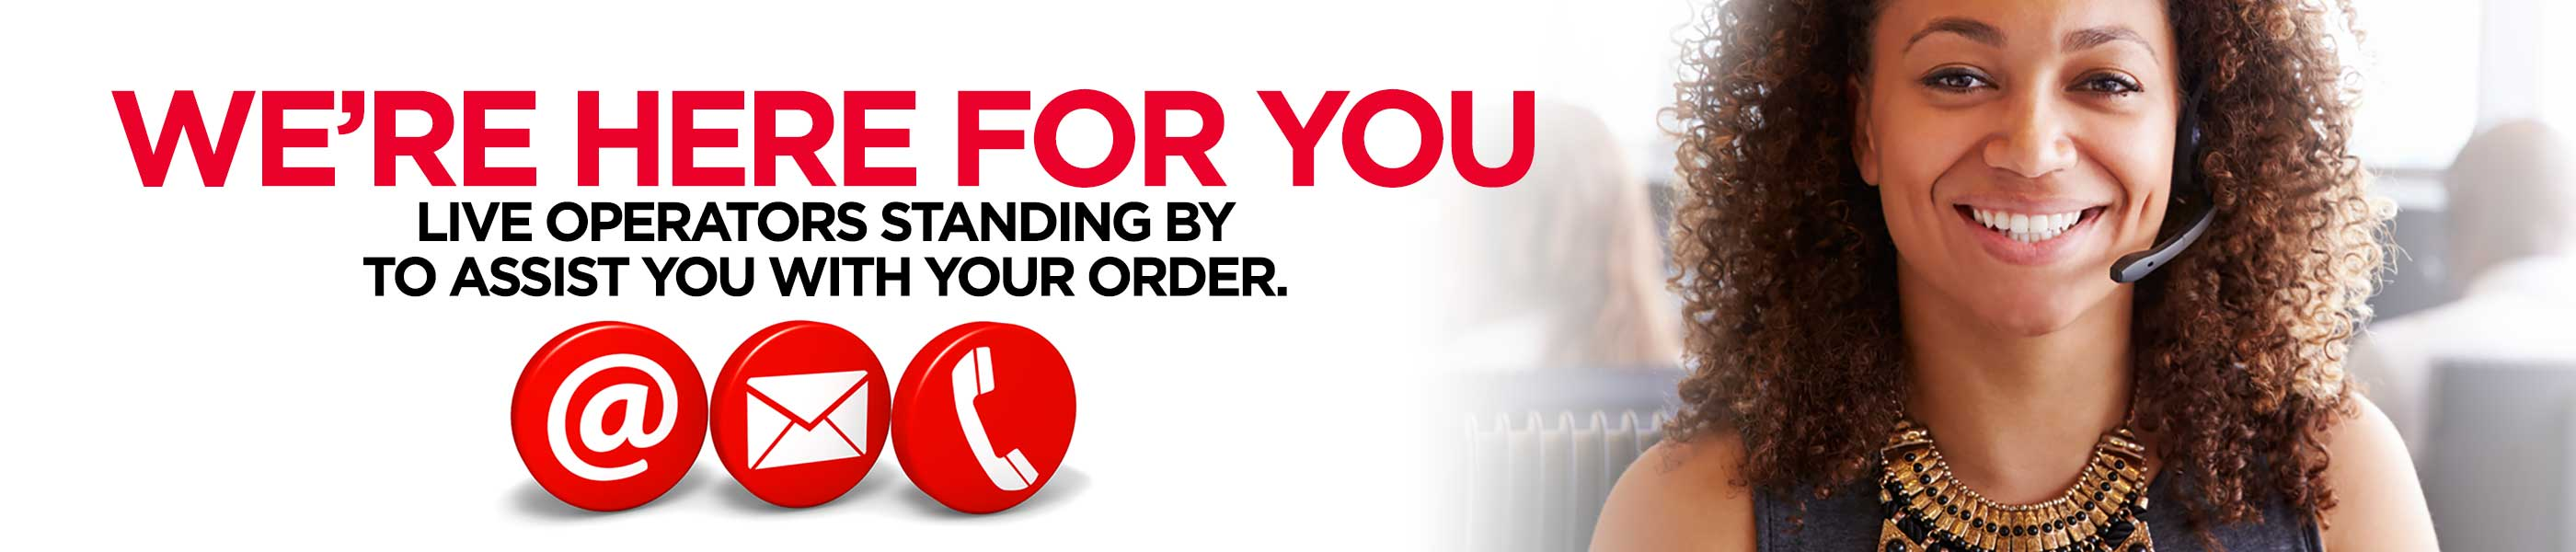 We're here for you. Live operators standing by to assist you with your order.